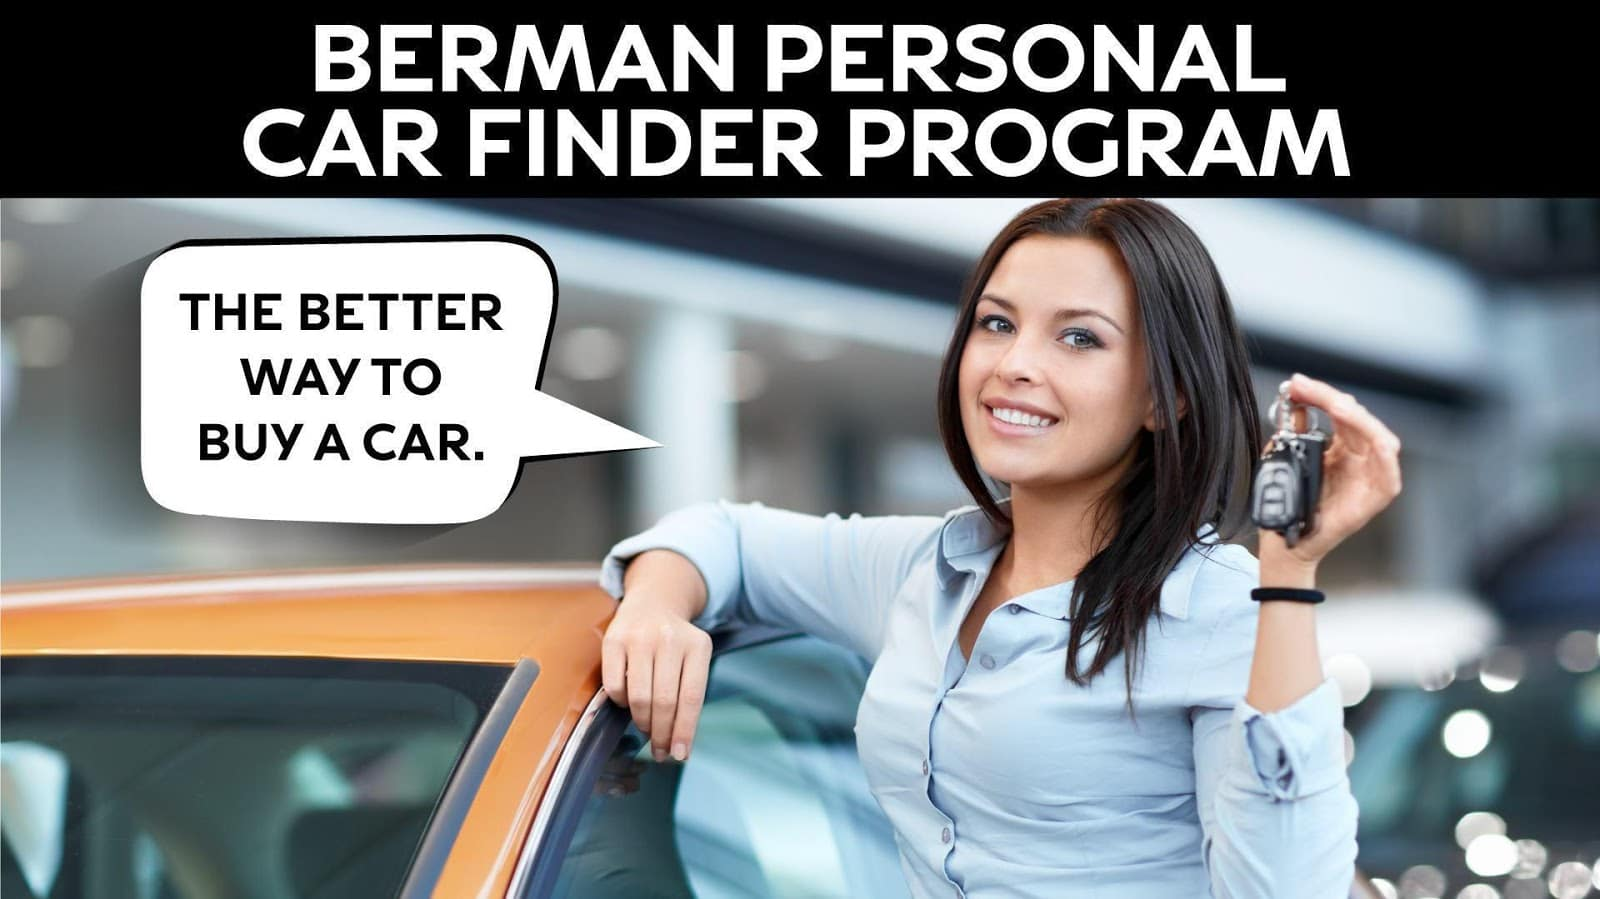 Berman Personal Car Finder Program